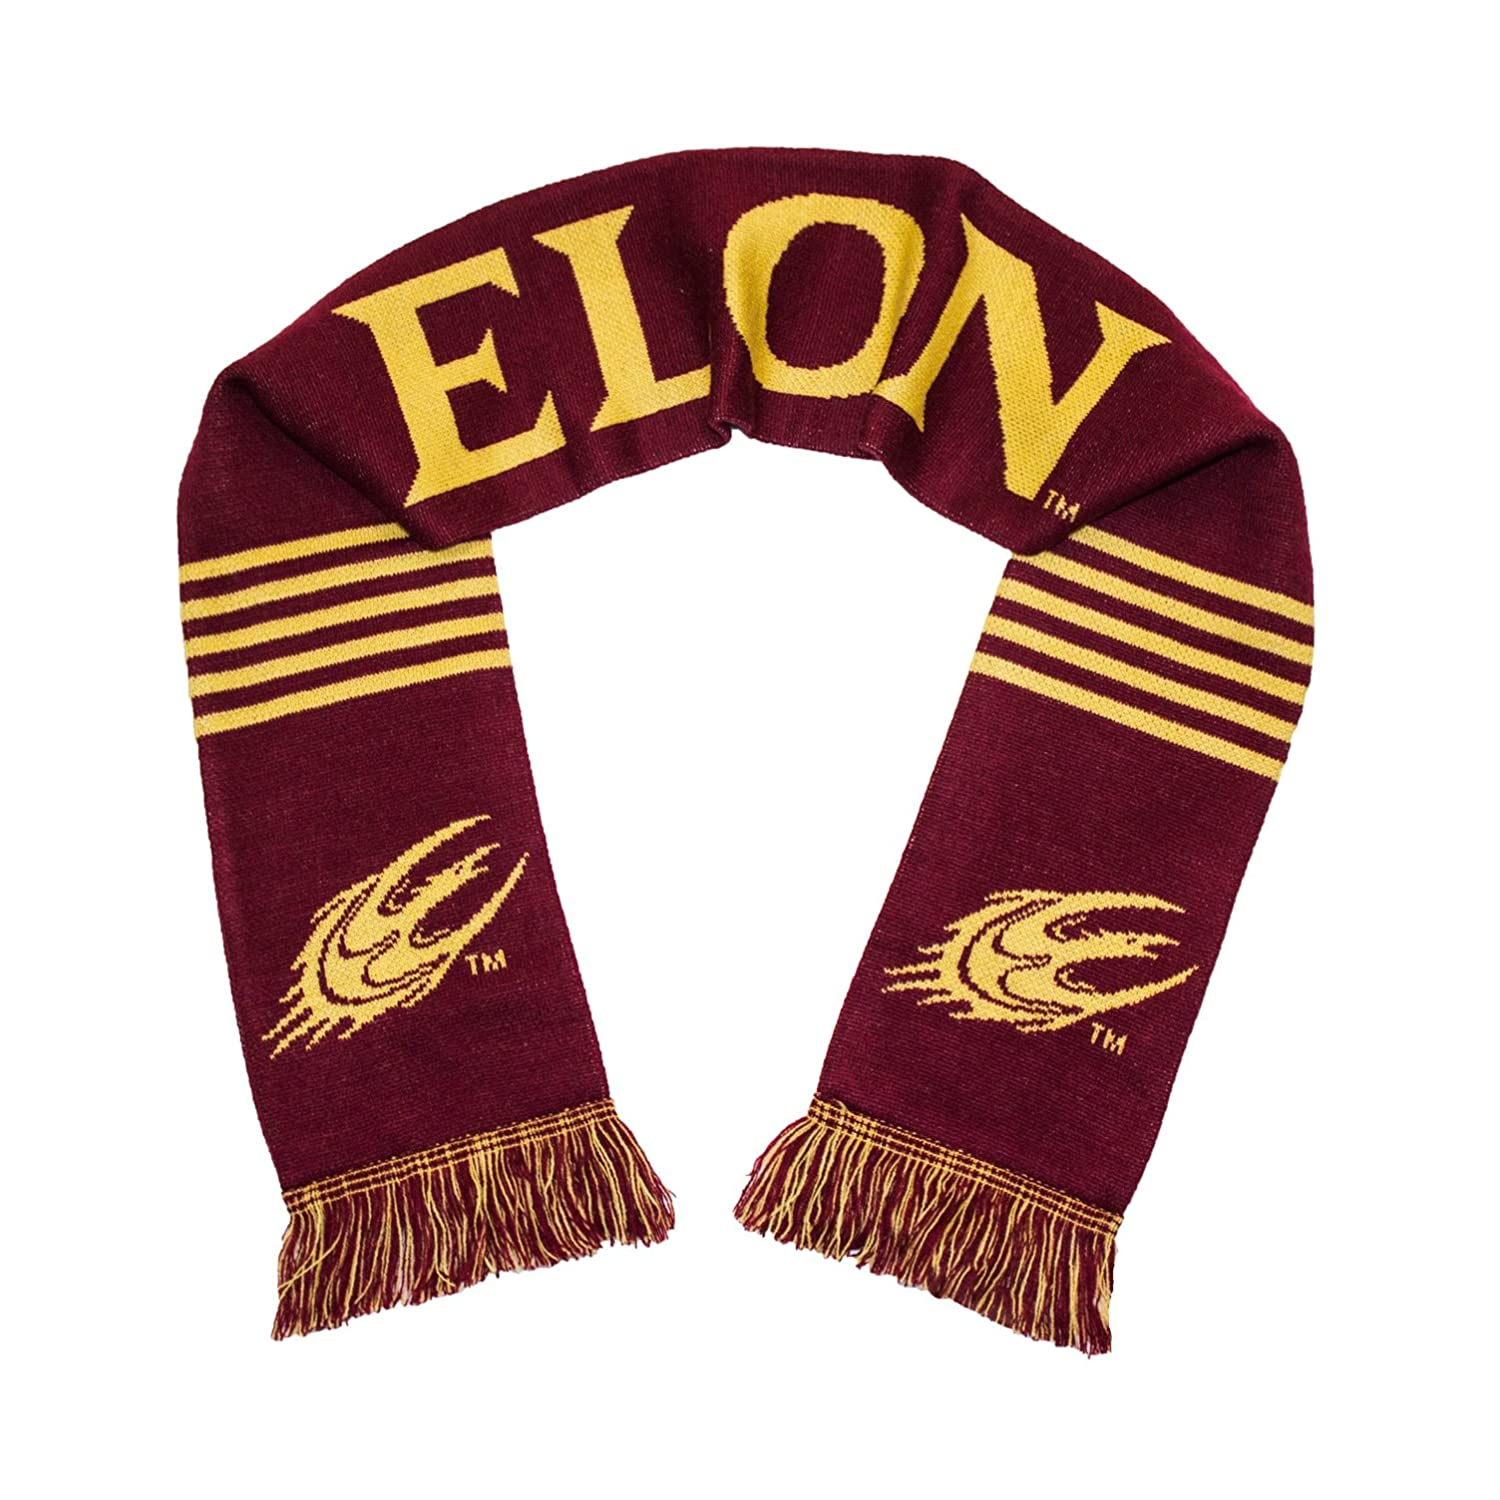 Tradition Scarves Elon Phoenix Scarf Elon University Knitted